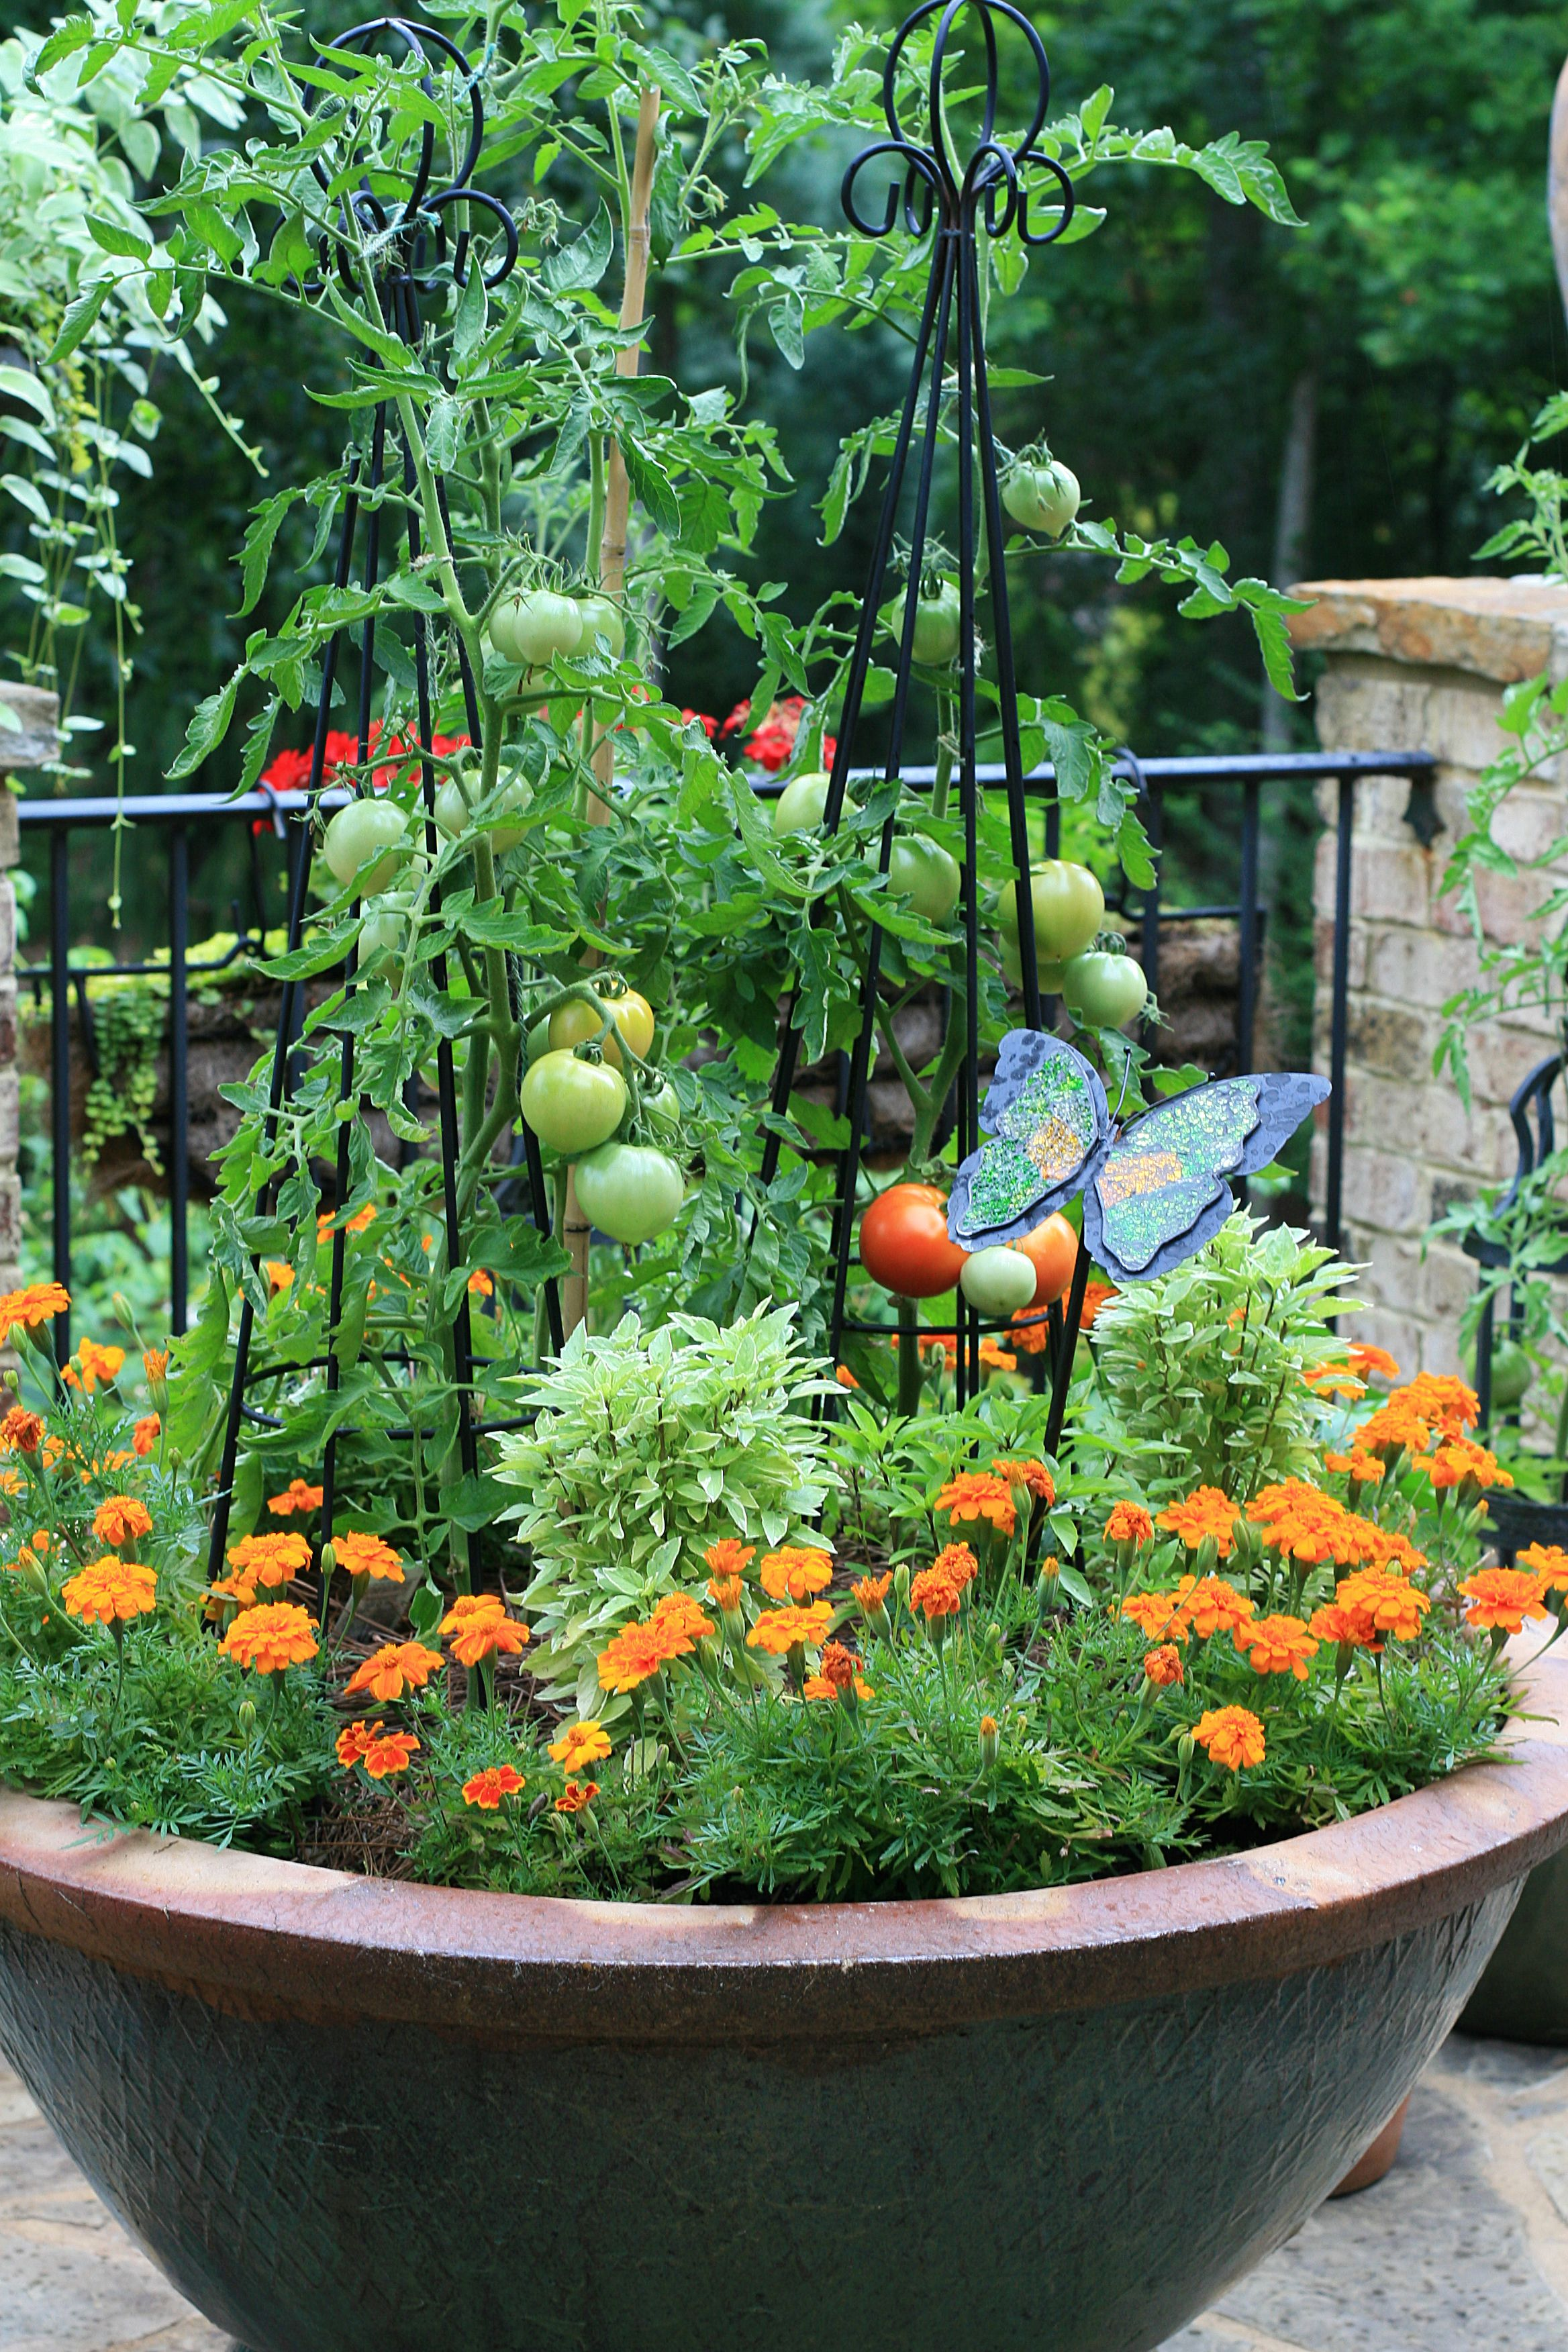 Tomato Garden Ideas tired of wimpy tomato cages check out these homemade tomato trellis ideas that are wind Tomatoes And Marigolds Im Not Much For Marigolds But This Looks Very Pretty